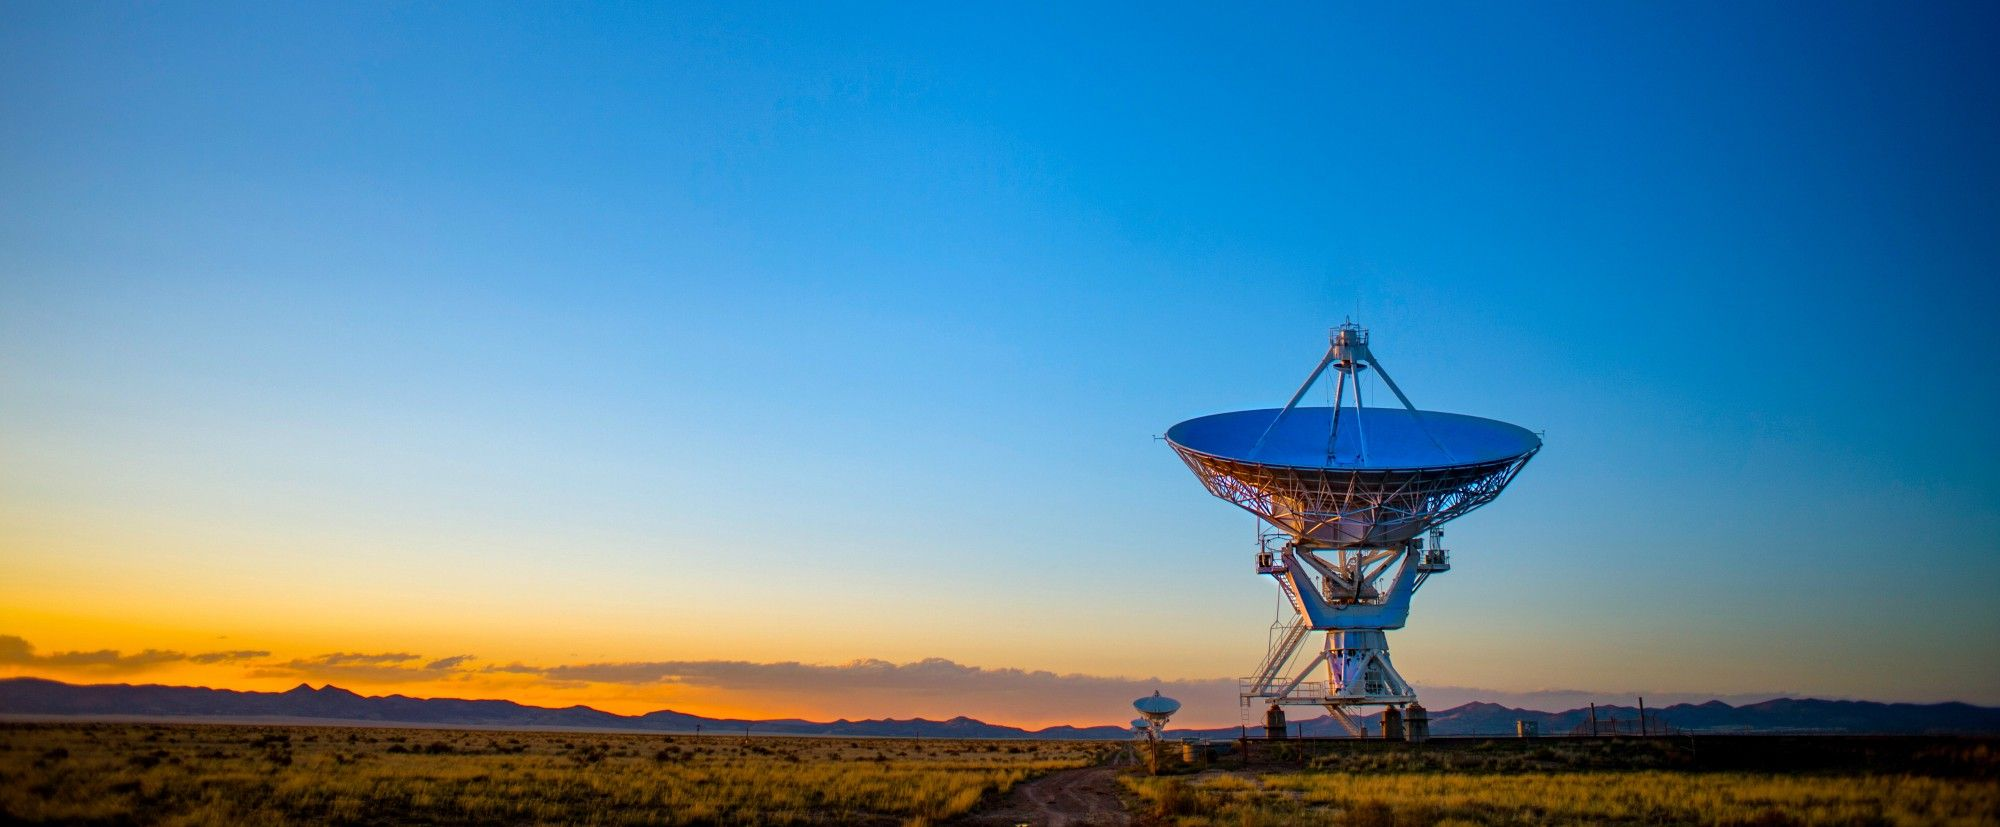 AI Powered Search for Extra-terrestrial Intelligence—Deep Learning Signal Classifiers, #life, #bus...